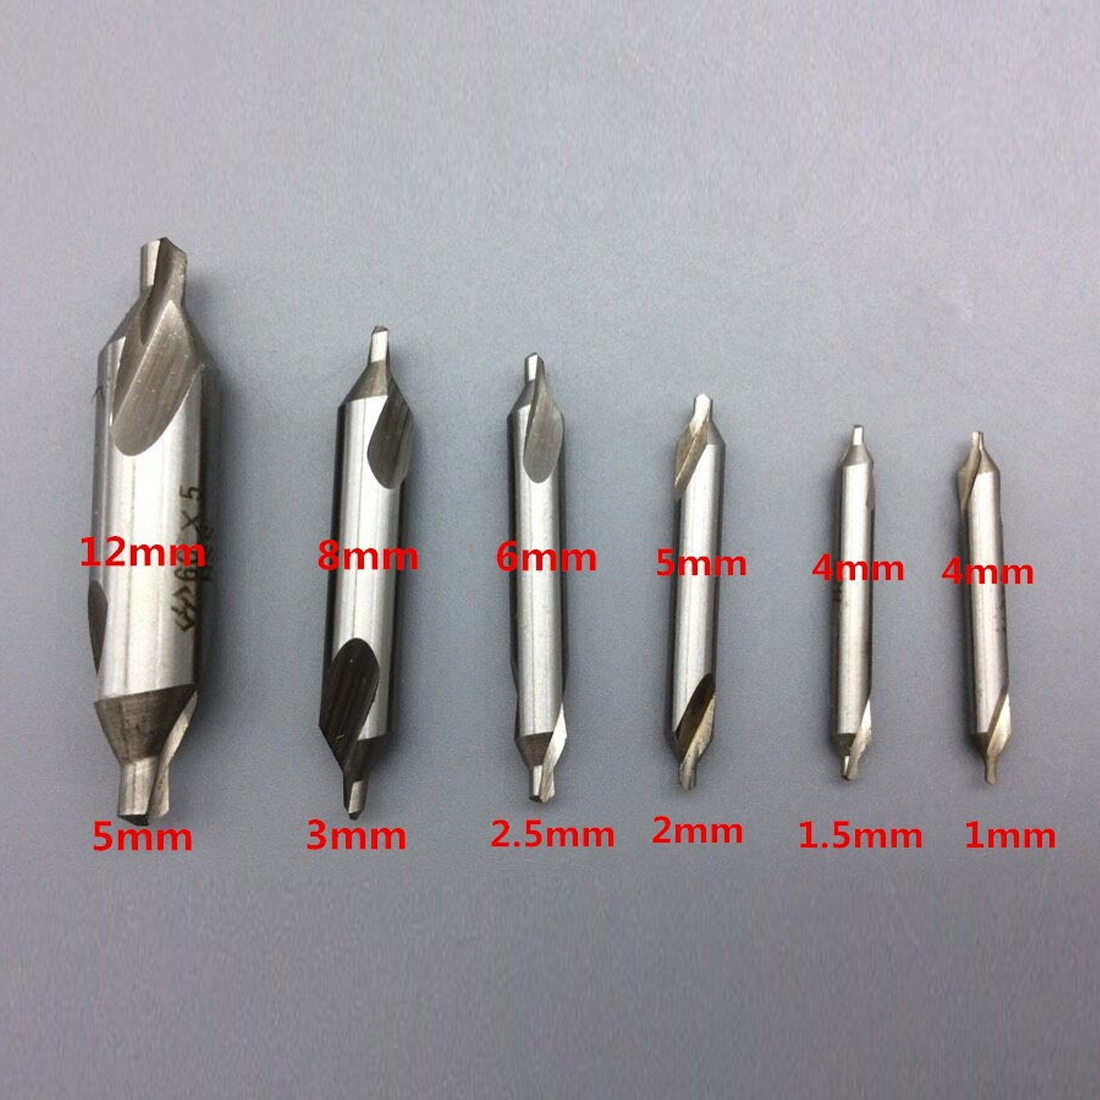 6pcs HSS High Speed Steel Center Drill Bits Set Metric Combined Countersink Kit 60 Degree Angle 1.0mm 1.5mm 2mm 2.5mm 3mm 5mm